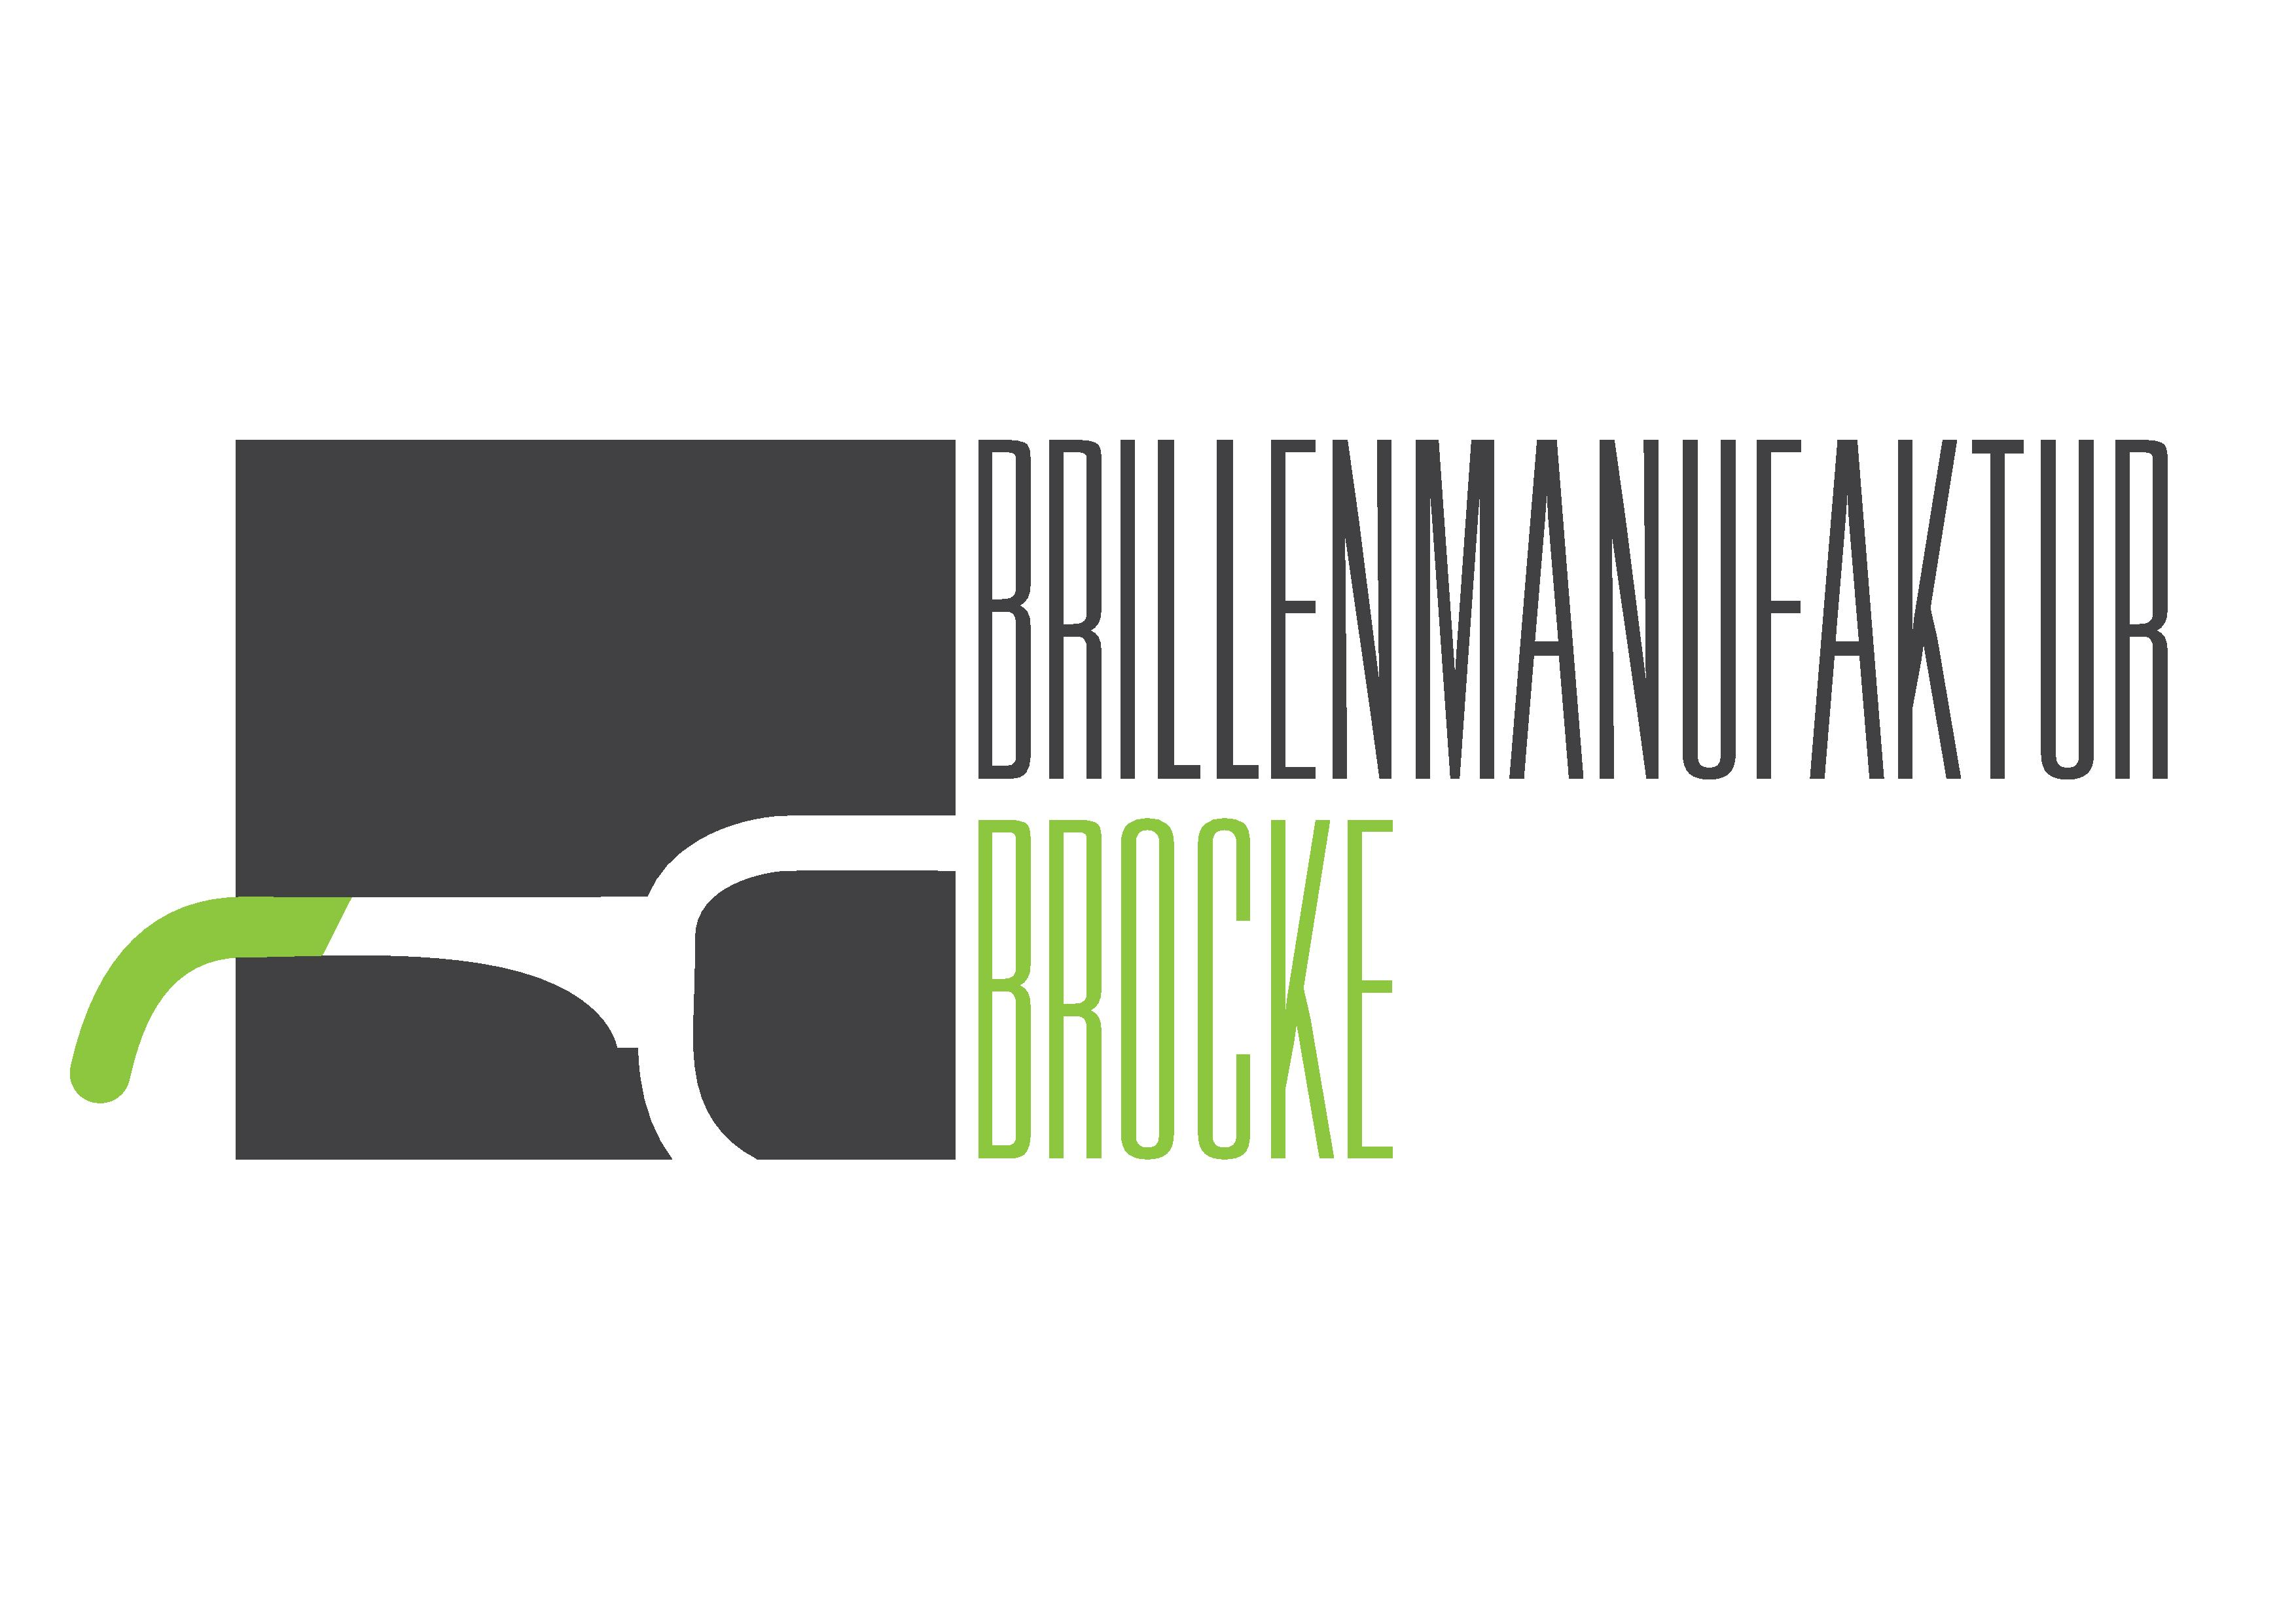 Brillenmanufaktur Brocke